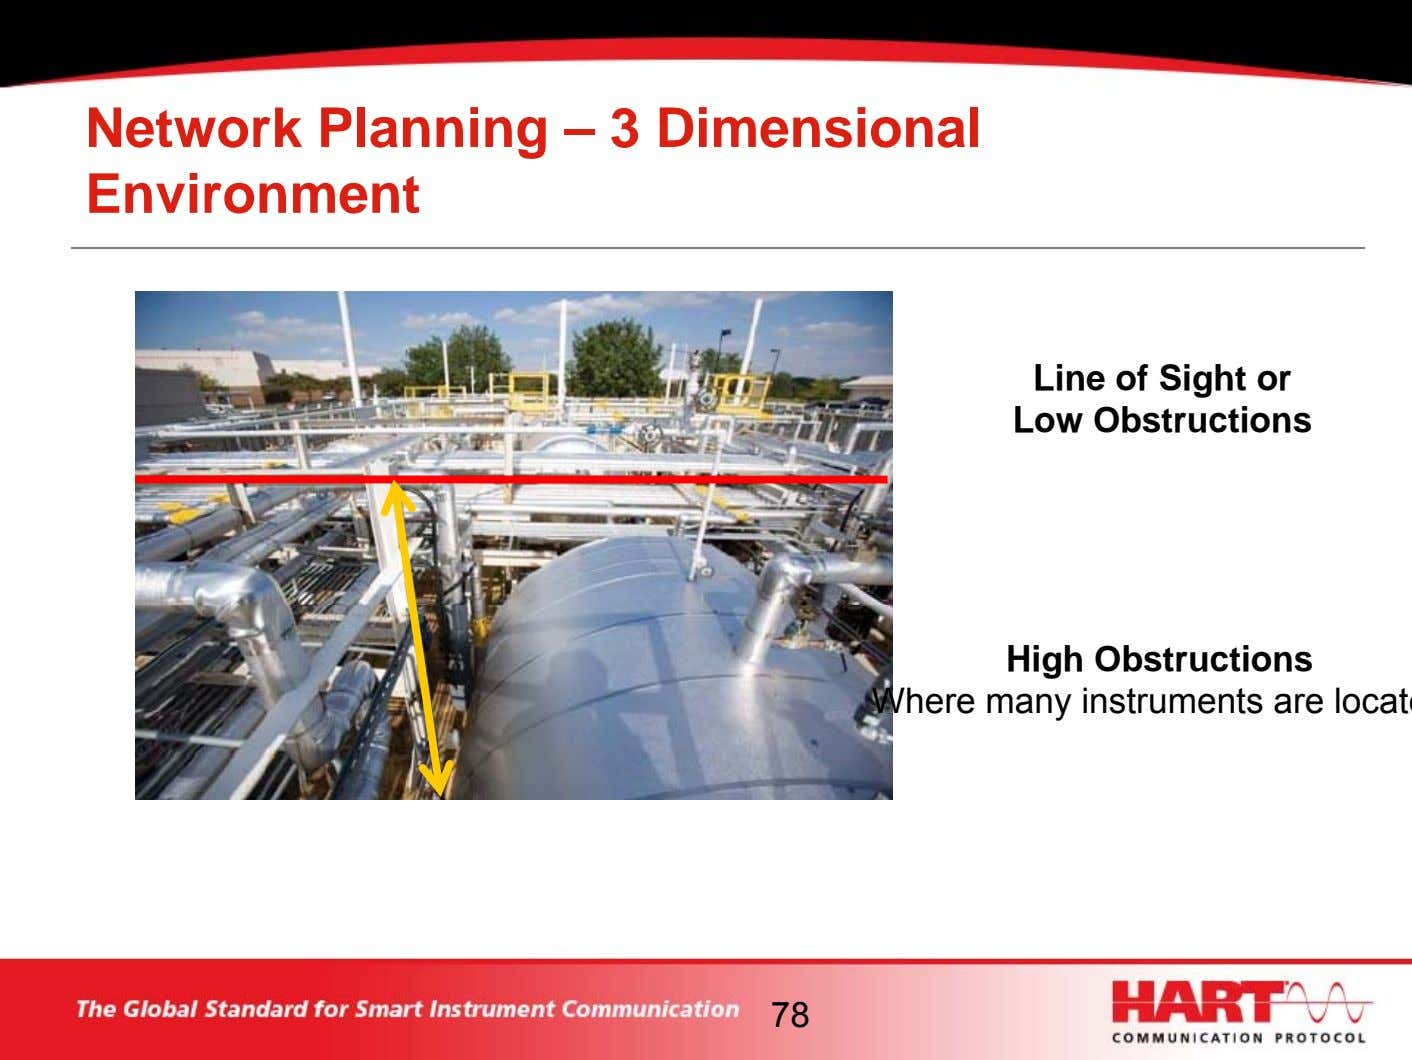 Network Planning – 3 Dimensional Environment Line of Sight or Low Obstructions High Obstructions Where